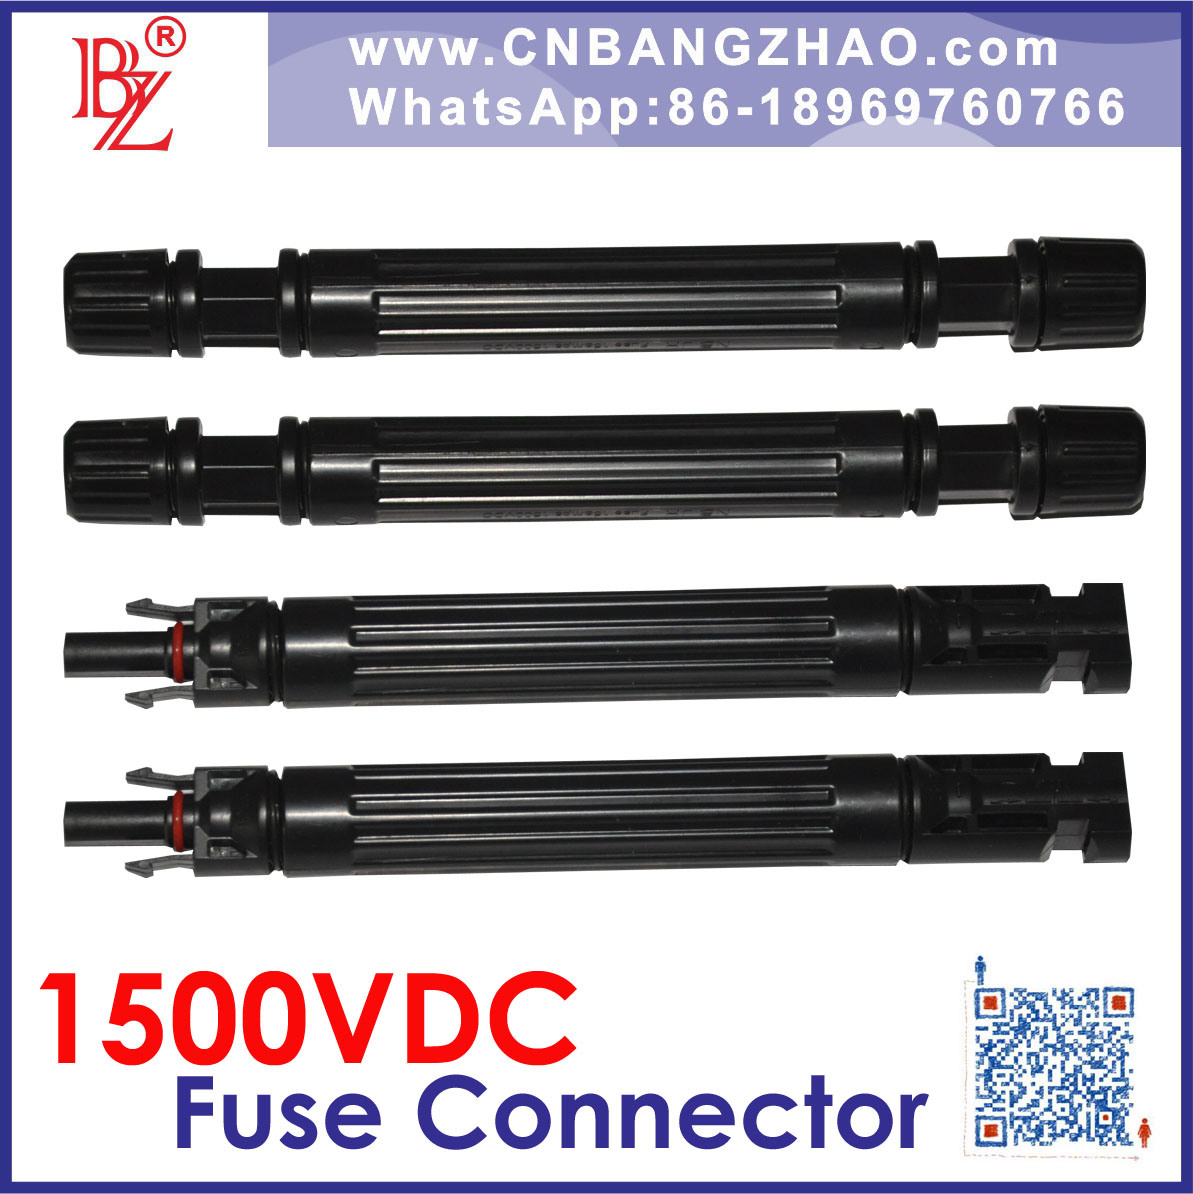 Factory Customize 1500VDC PV Cable with 1500VDC Fuse Connector Harness